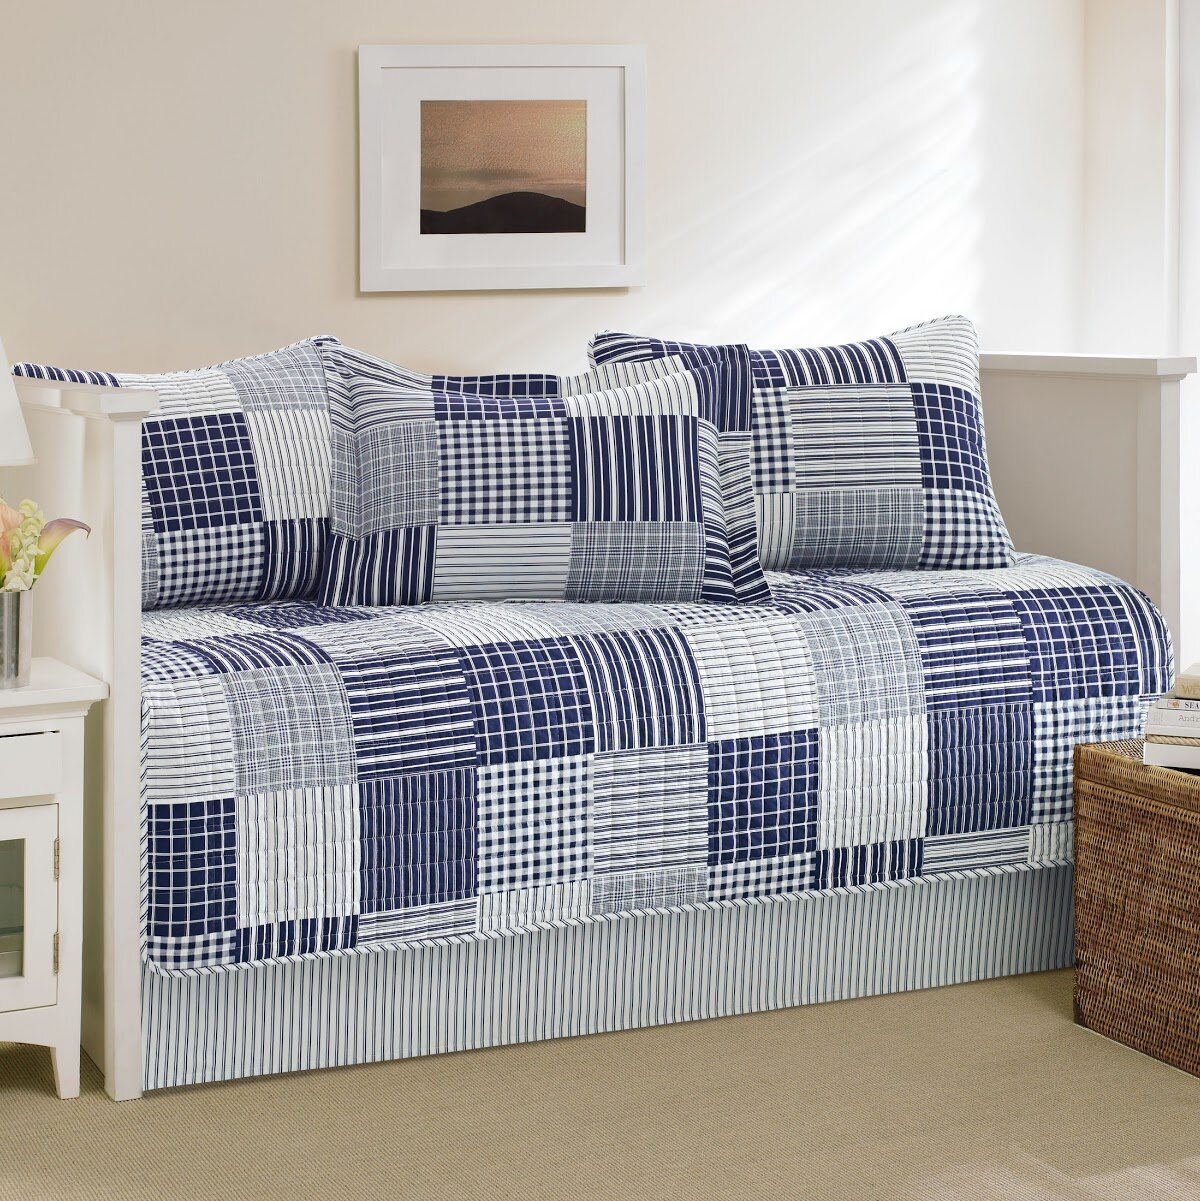 Daybed Bedding Set Blue Cover Plaids Stripes Twin Sized Quilted Coverlet 5 Pc Bedding Home Garden